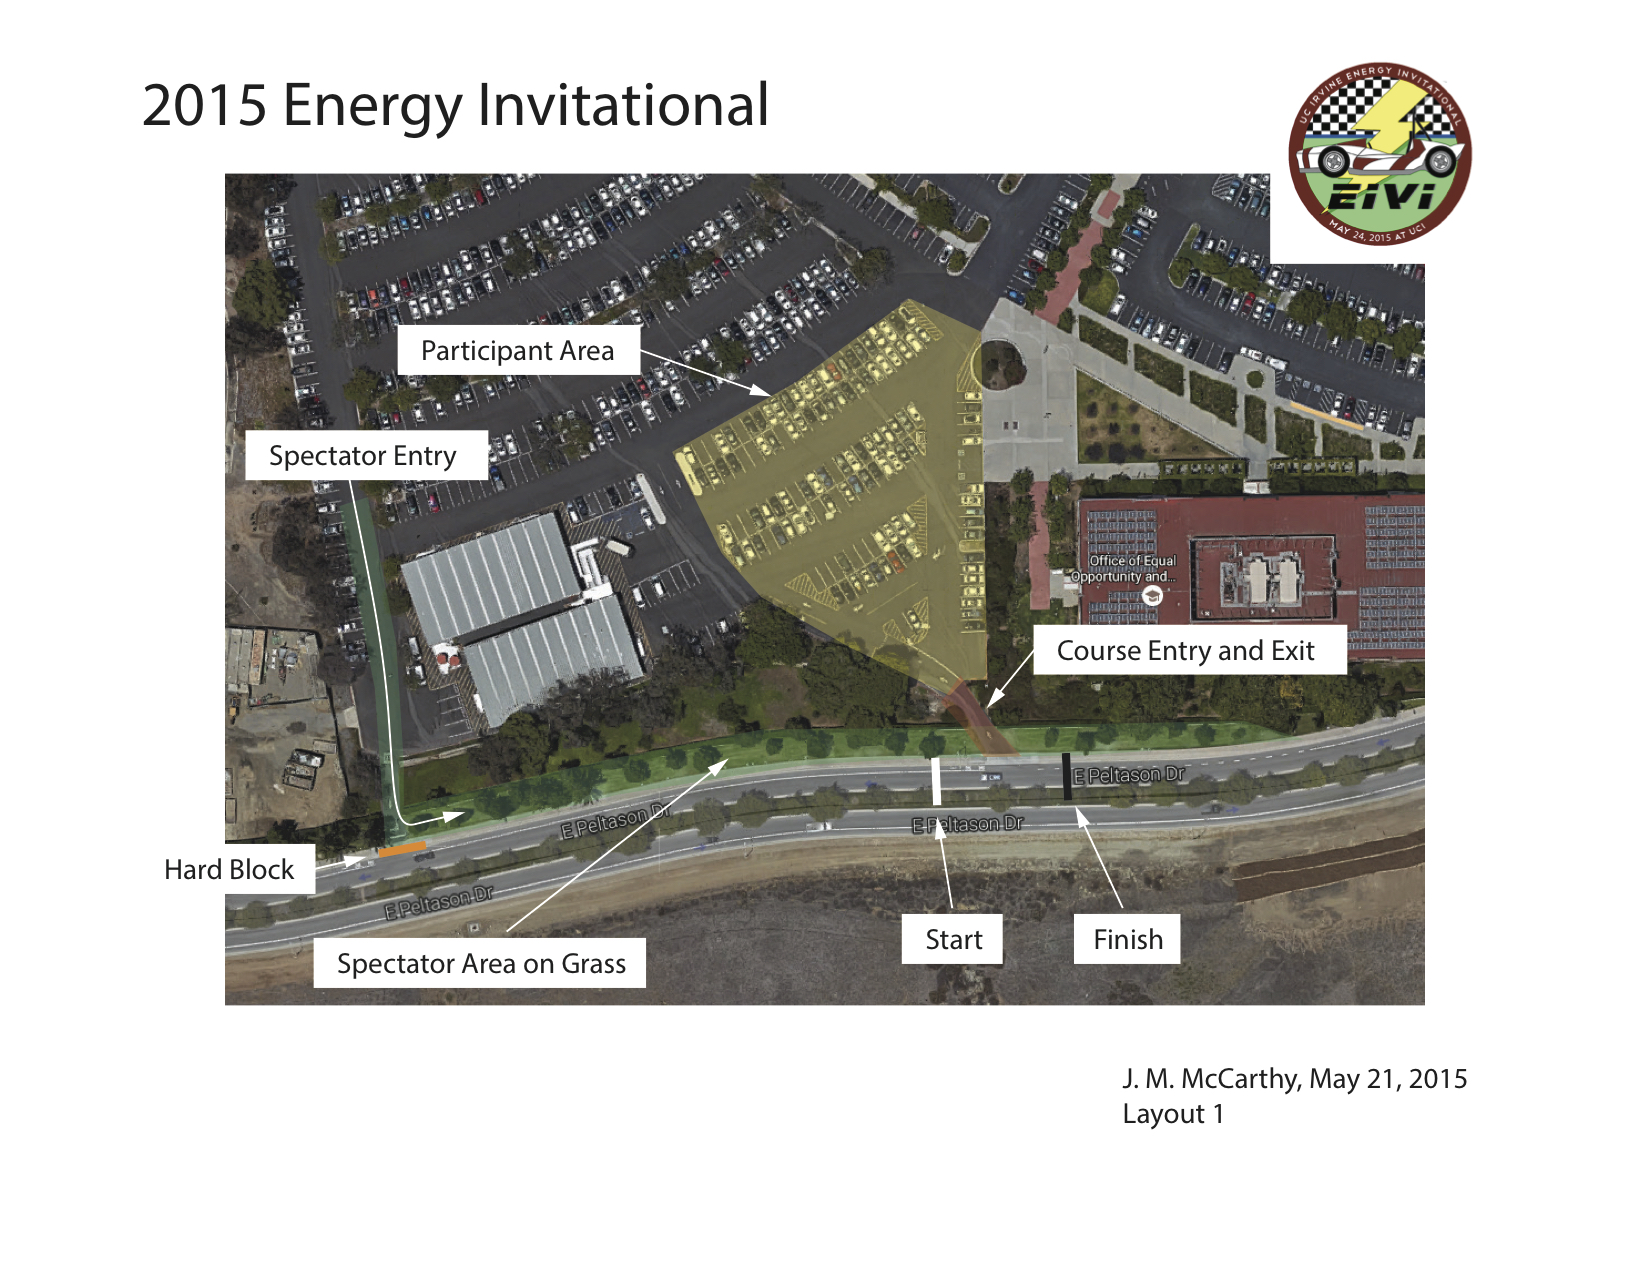 2015 Energy Invitational Layout 1